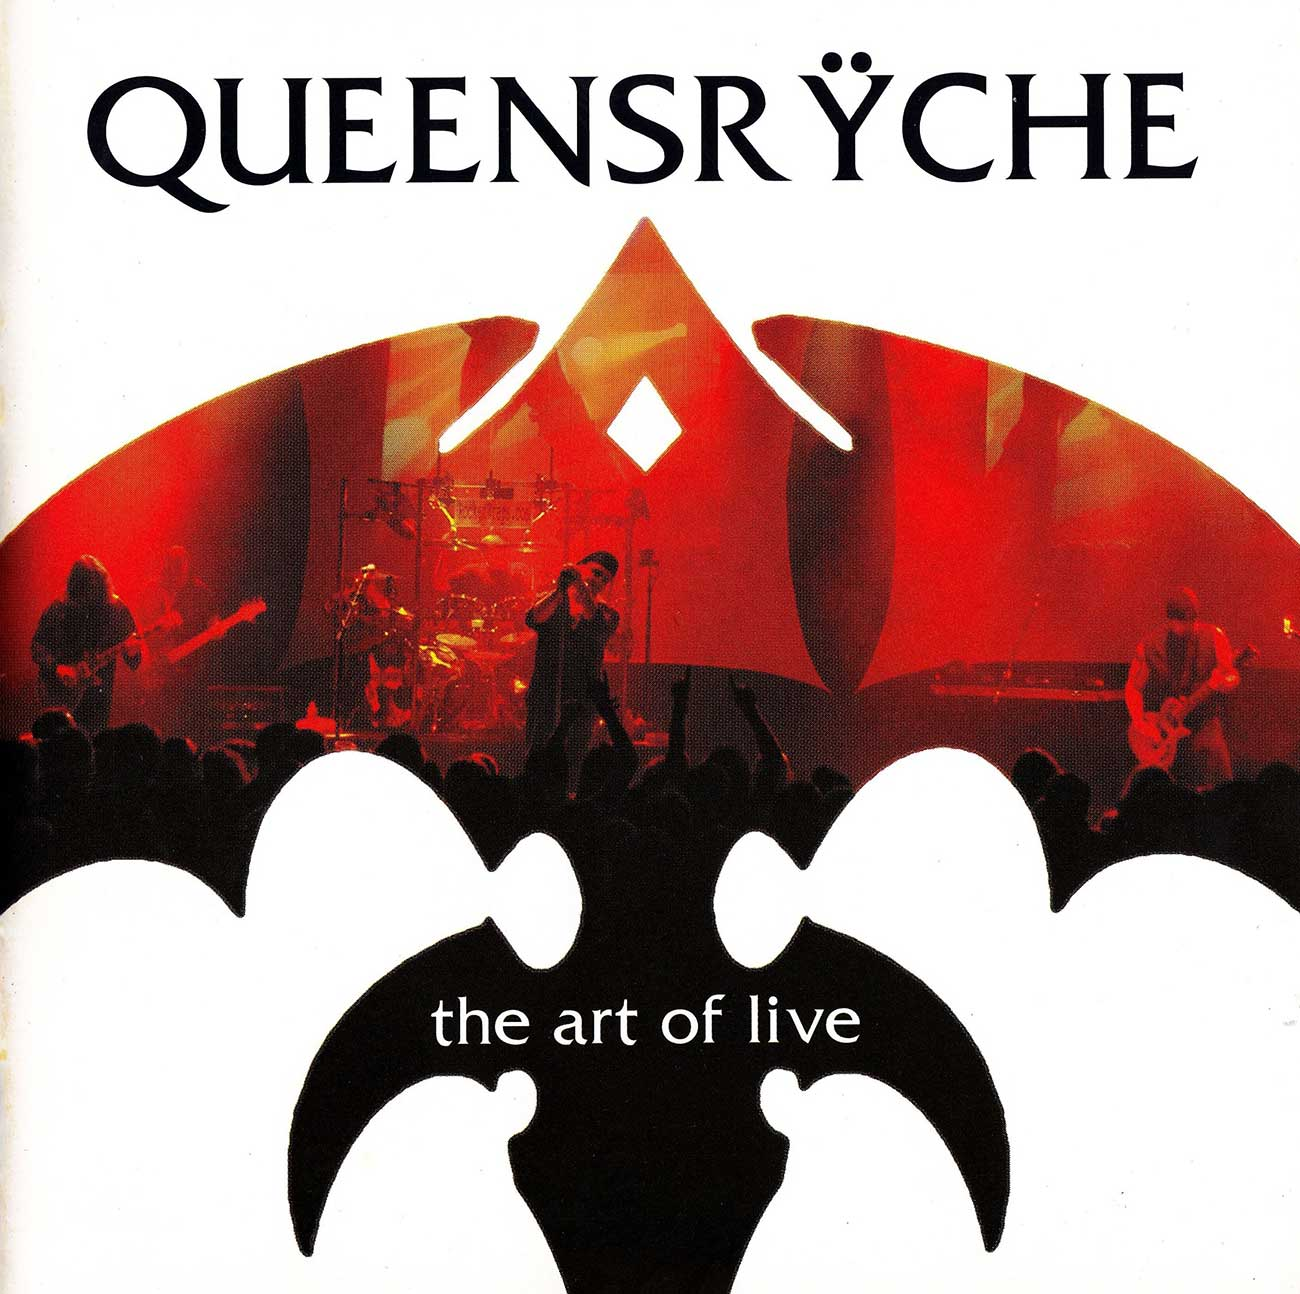 The-Art-of-Live